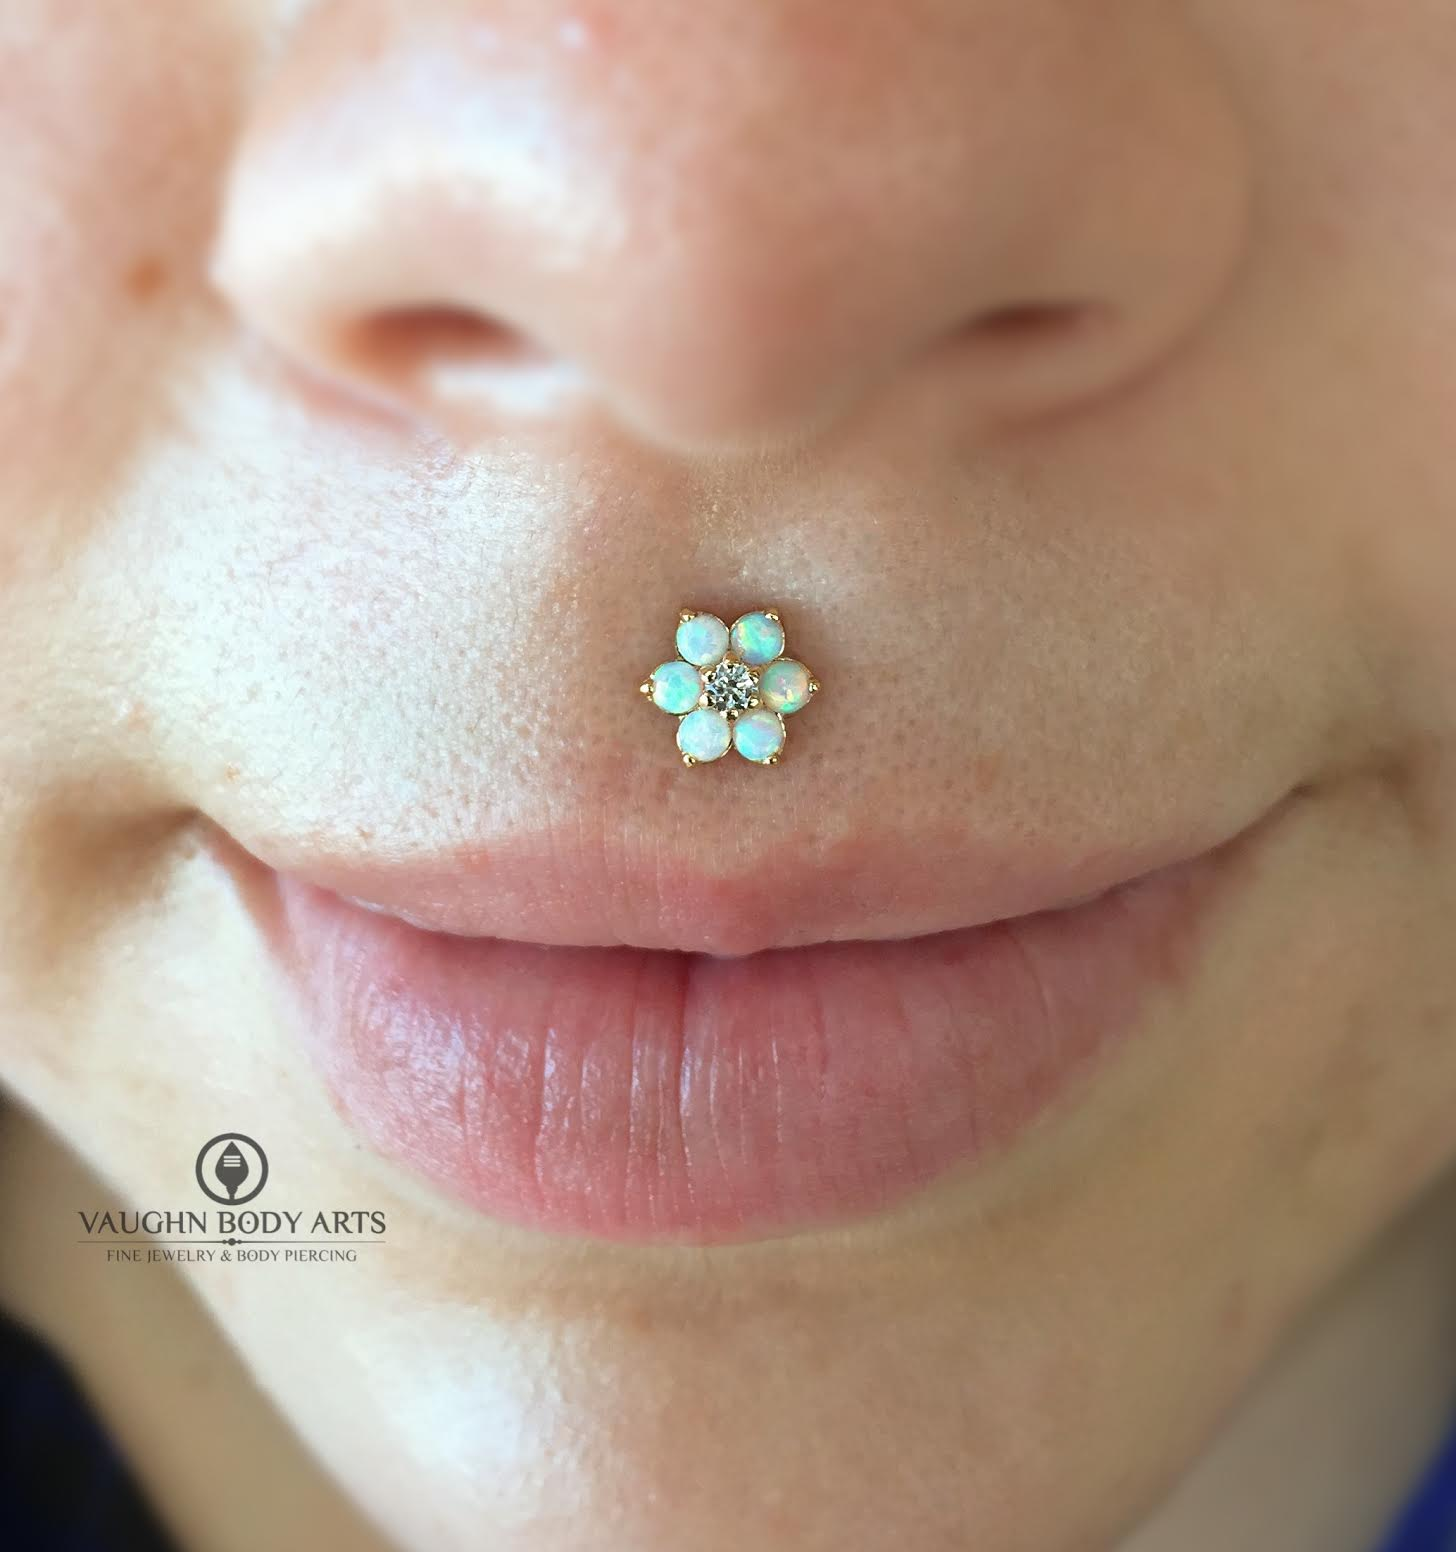 Philtrum piercing with an 18k yellow gold flower from Anatometal.